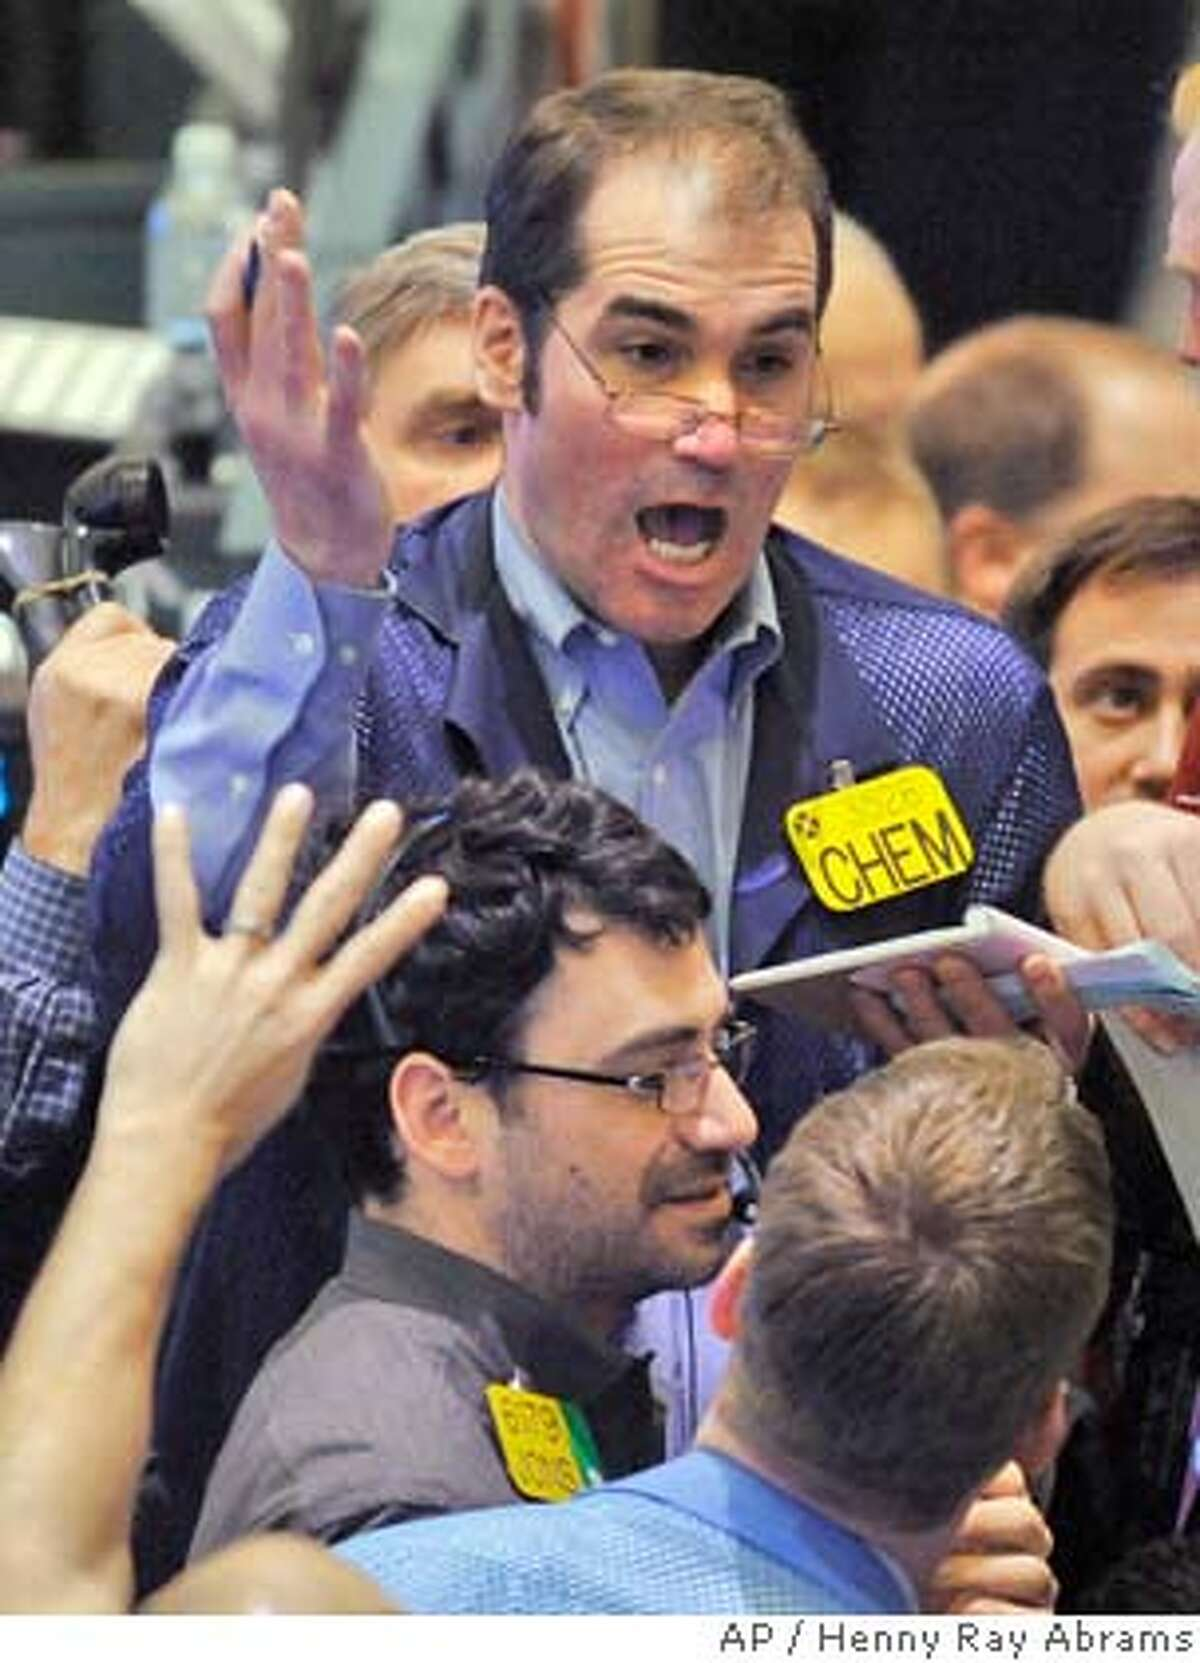 A trader makes his voice heard in the crude oil and natural gas options pit on the floor of the New York Mercantile Exchange in New York, Thursday, Mar. 13, 2008. Gas and oil prices jumped to new highs as the dollar weakened and investors shrugged off fresh evidence of a U.S. economic slowdown. (AP Photo/Henny Ray Abrams)